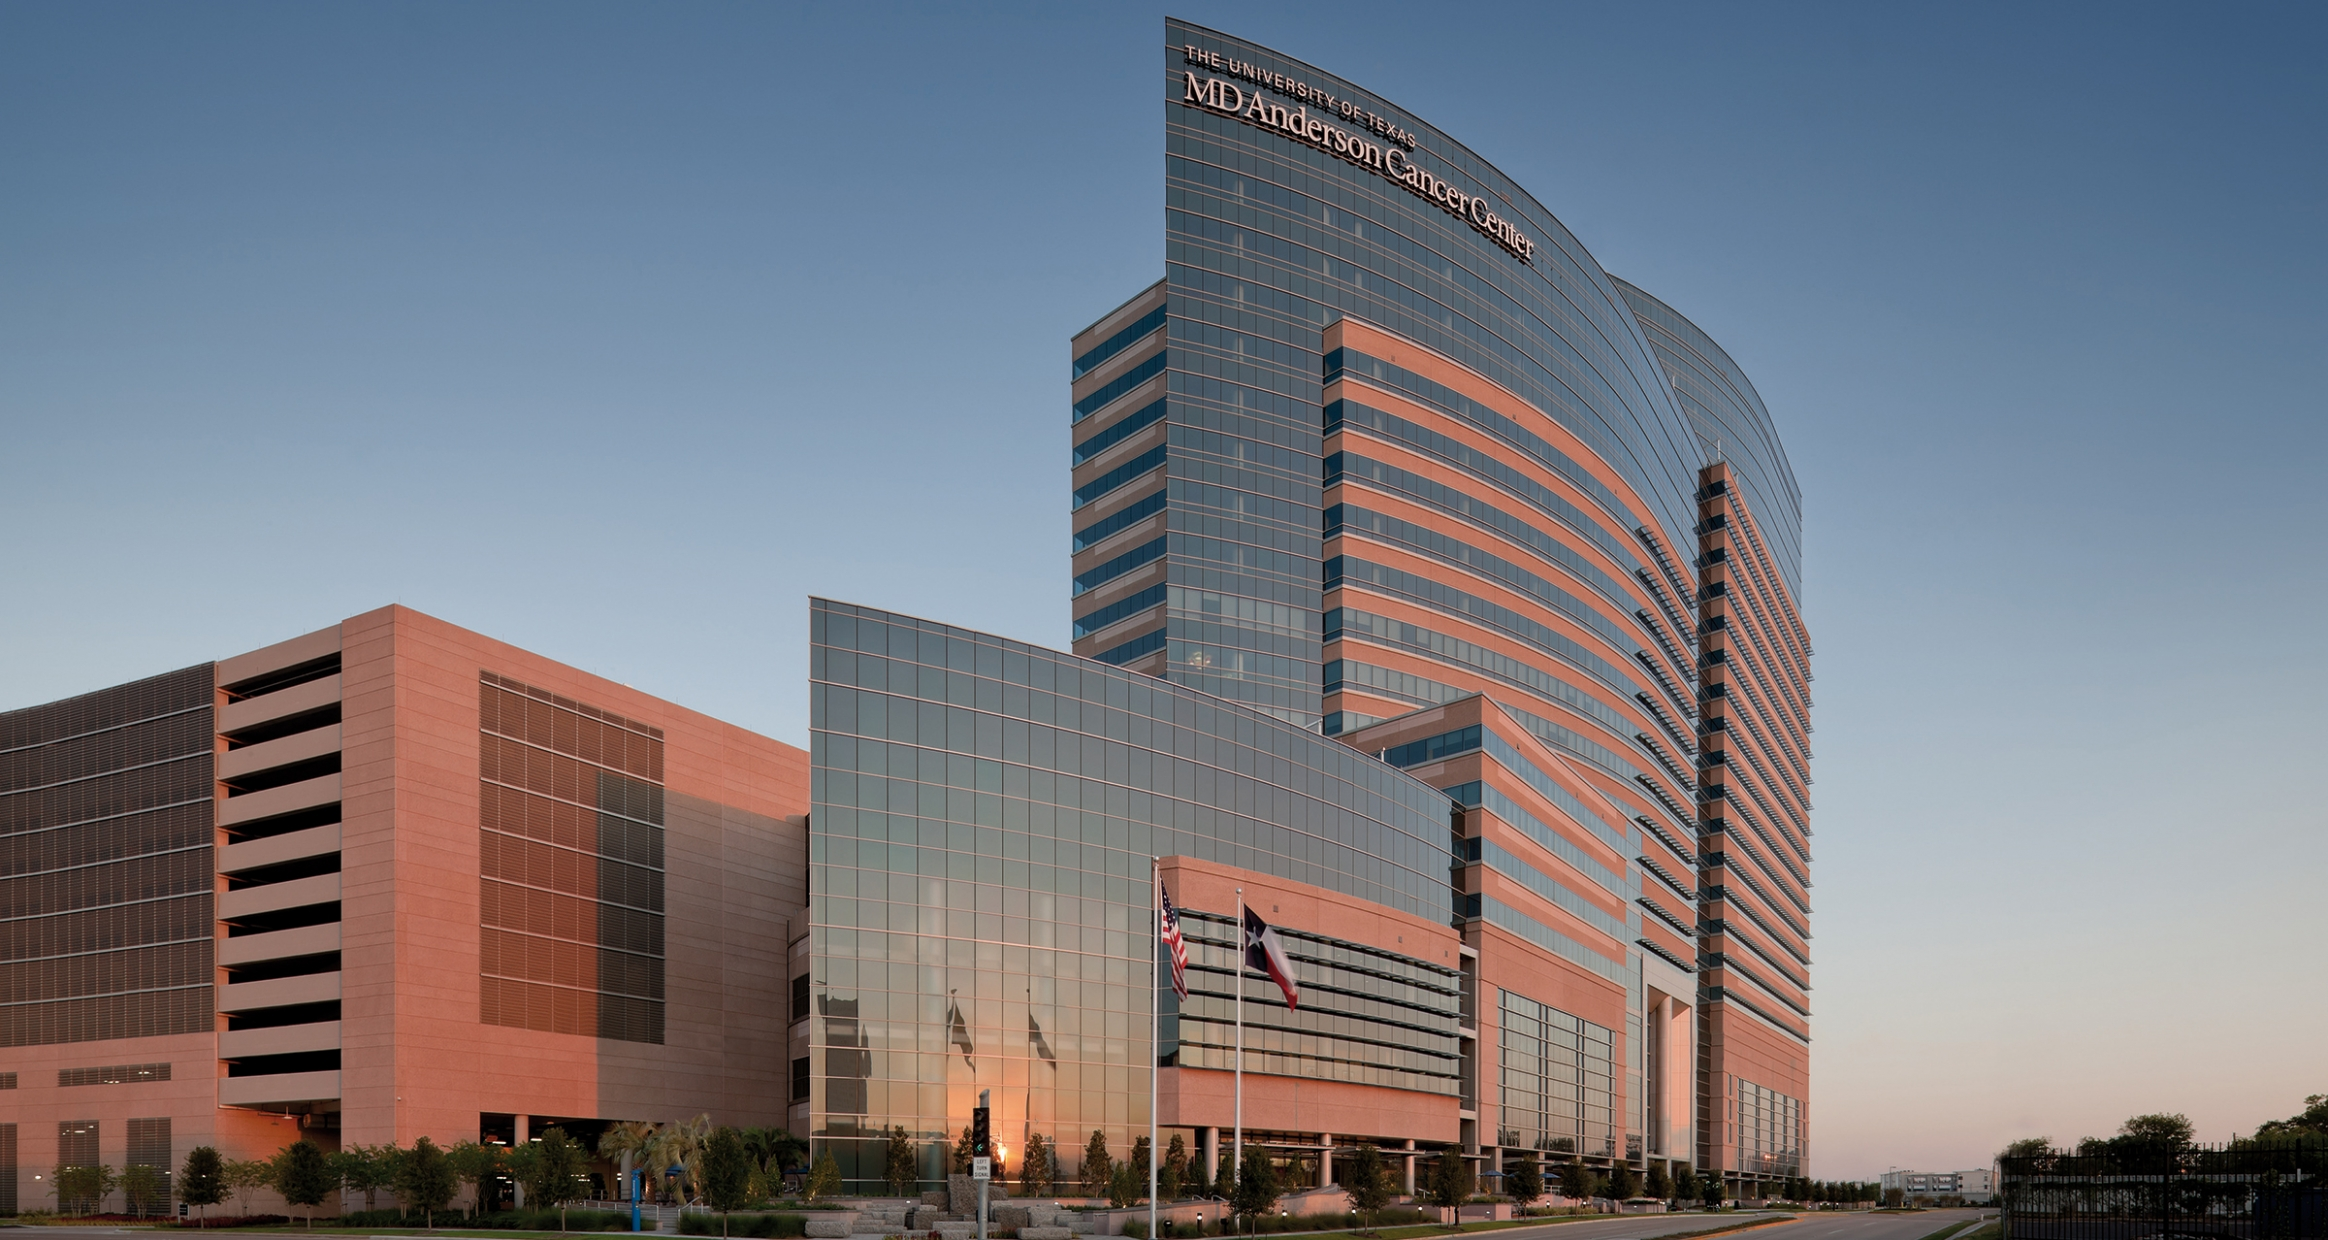 MD Anderson Exterior at dusk